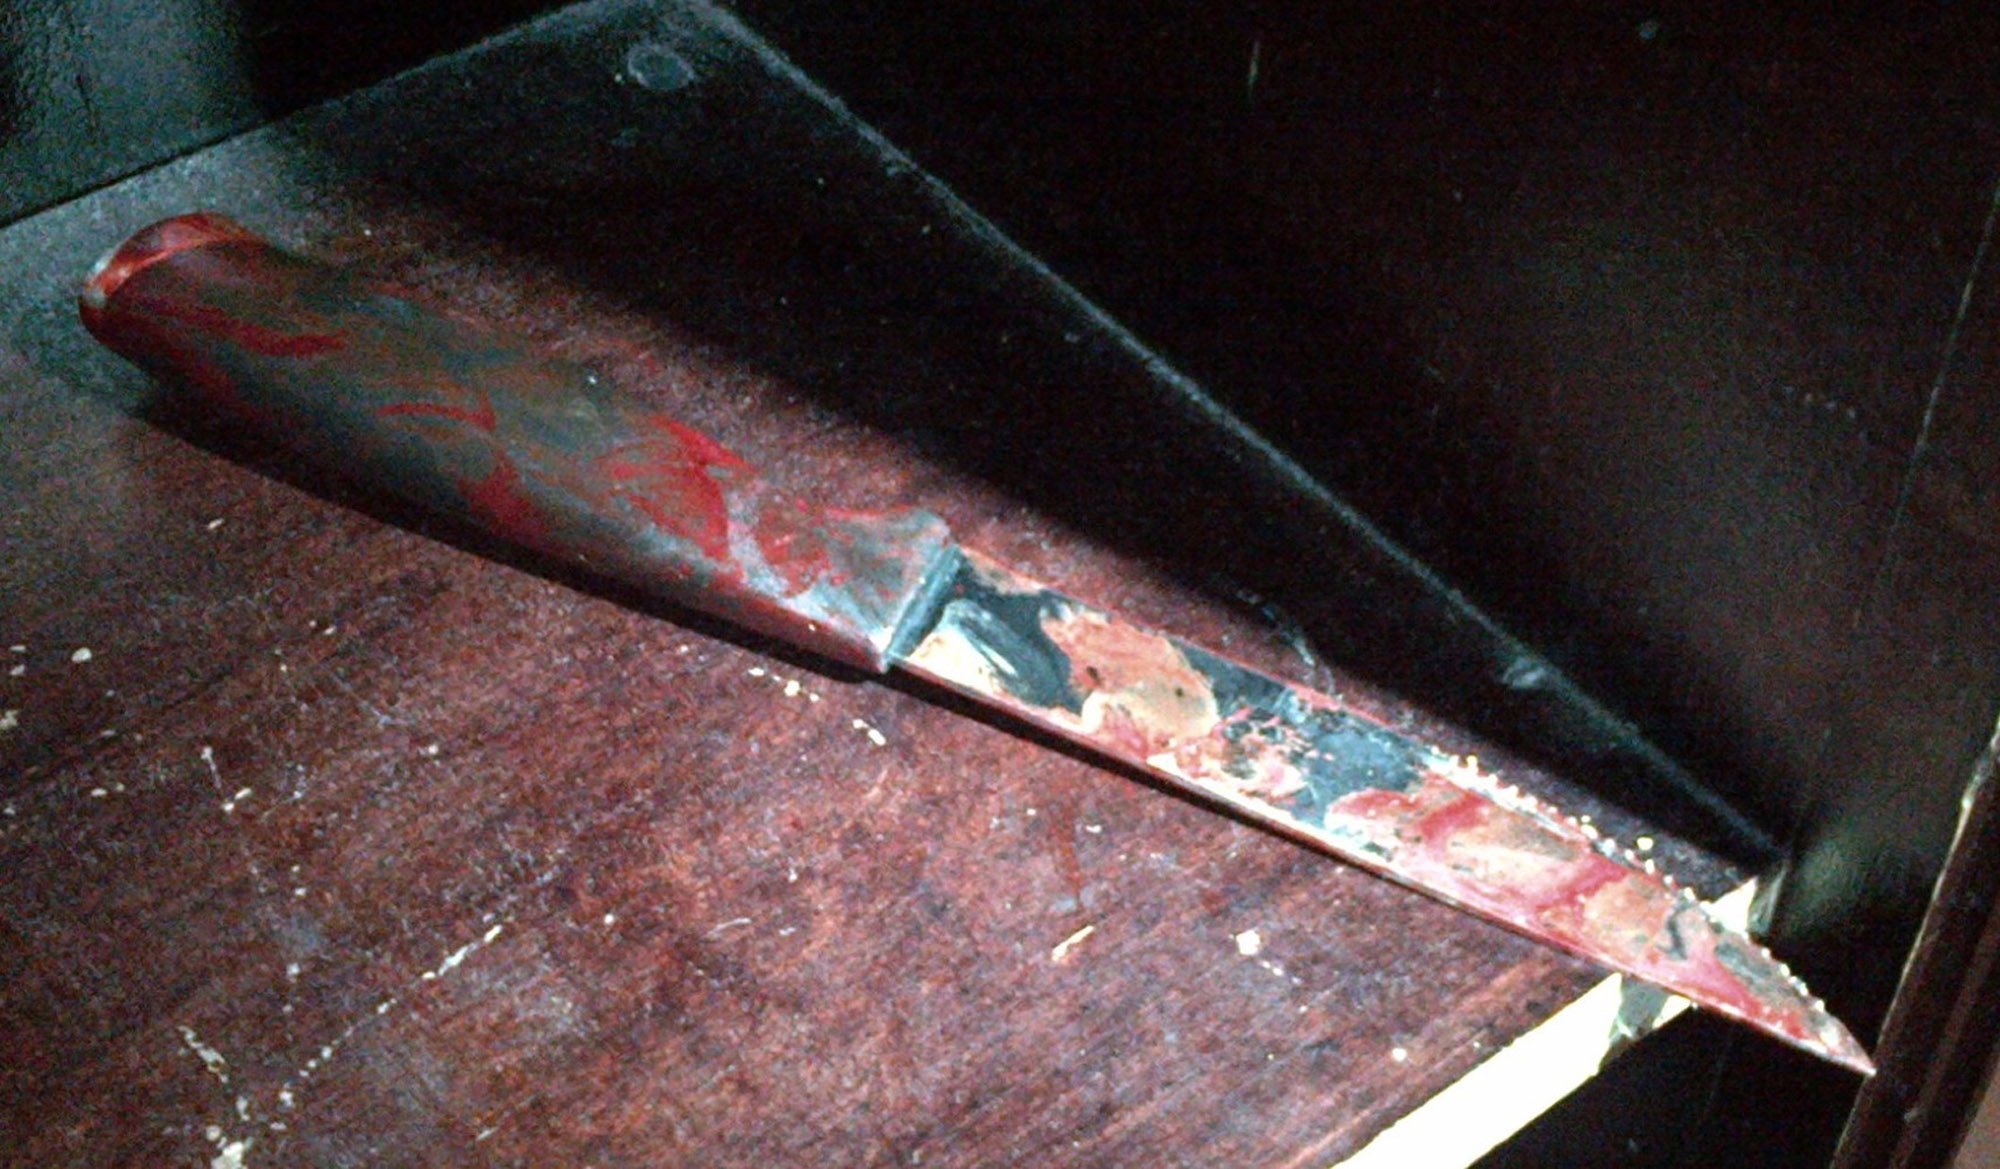 A blood-stained nine-inch (23 cm) knife is seen after being recovered at the scene of a stabbing at a Brooklyn synagogue